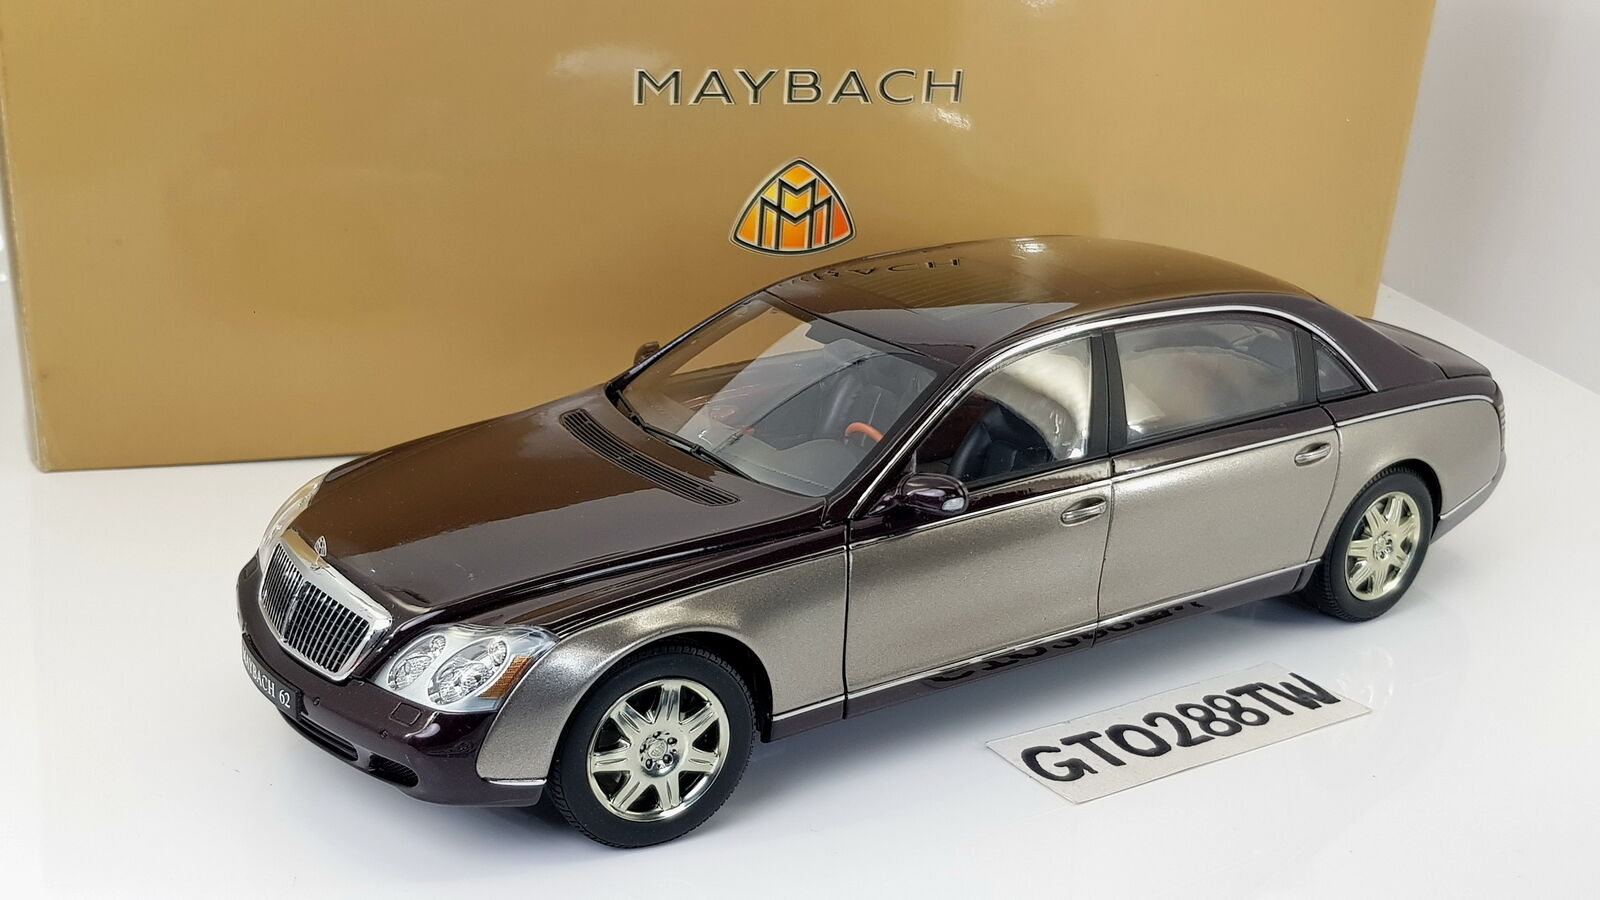 Autoart 1 18 Scale Maybach 62 LWB Dealer Edition-Met. marron or (Mercedes-Benz)